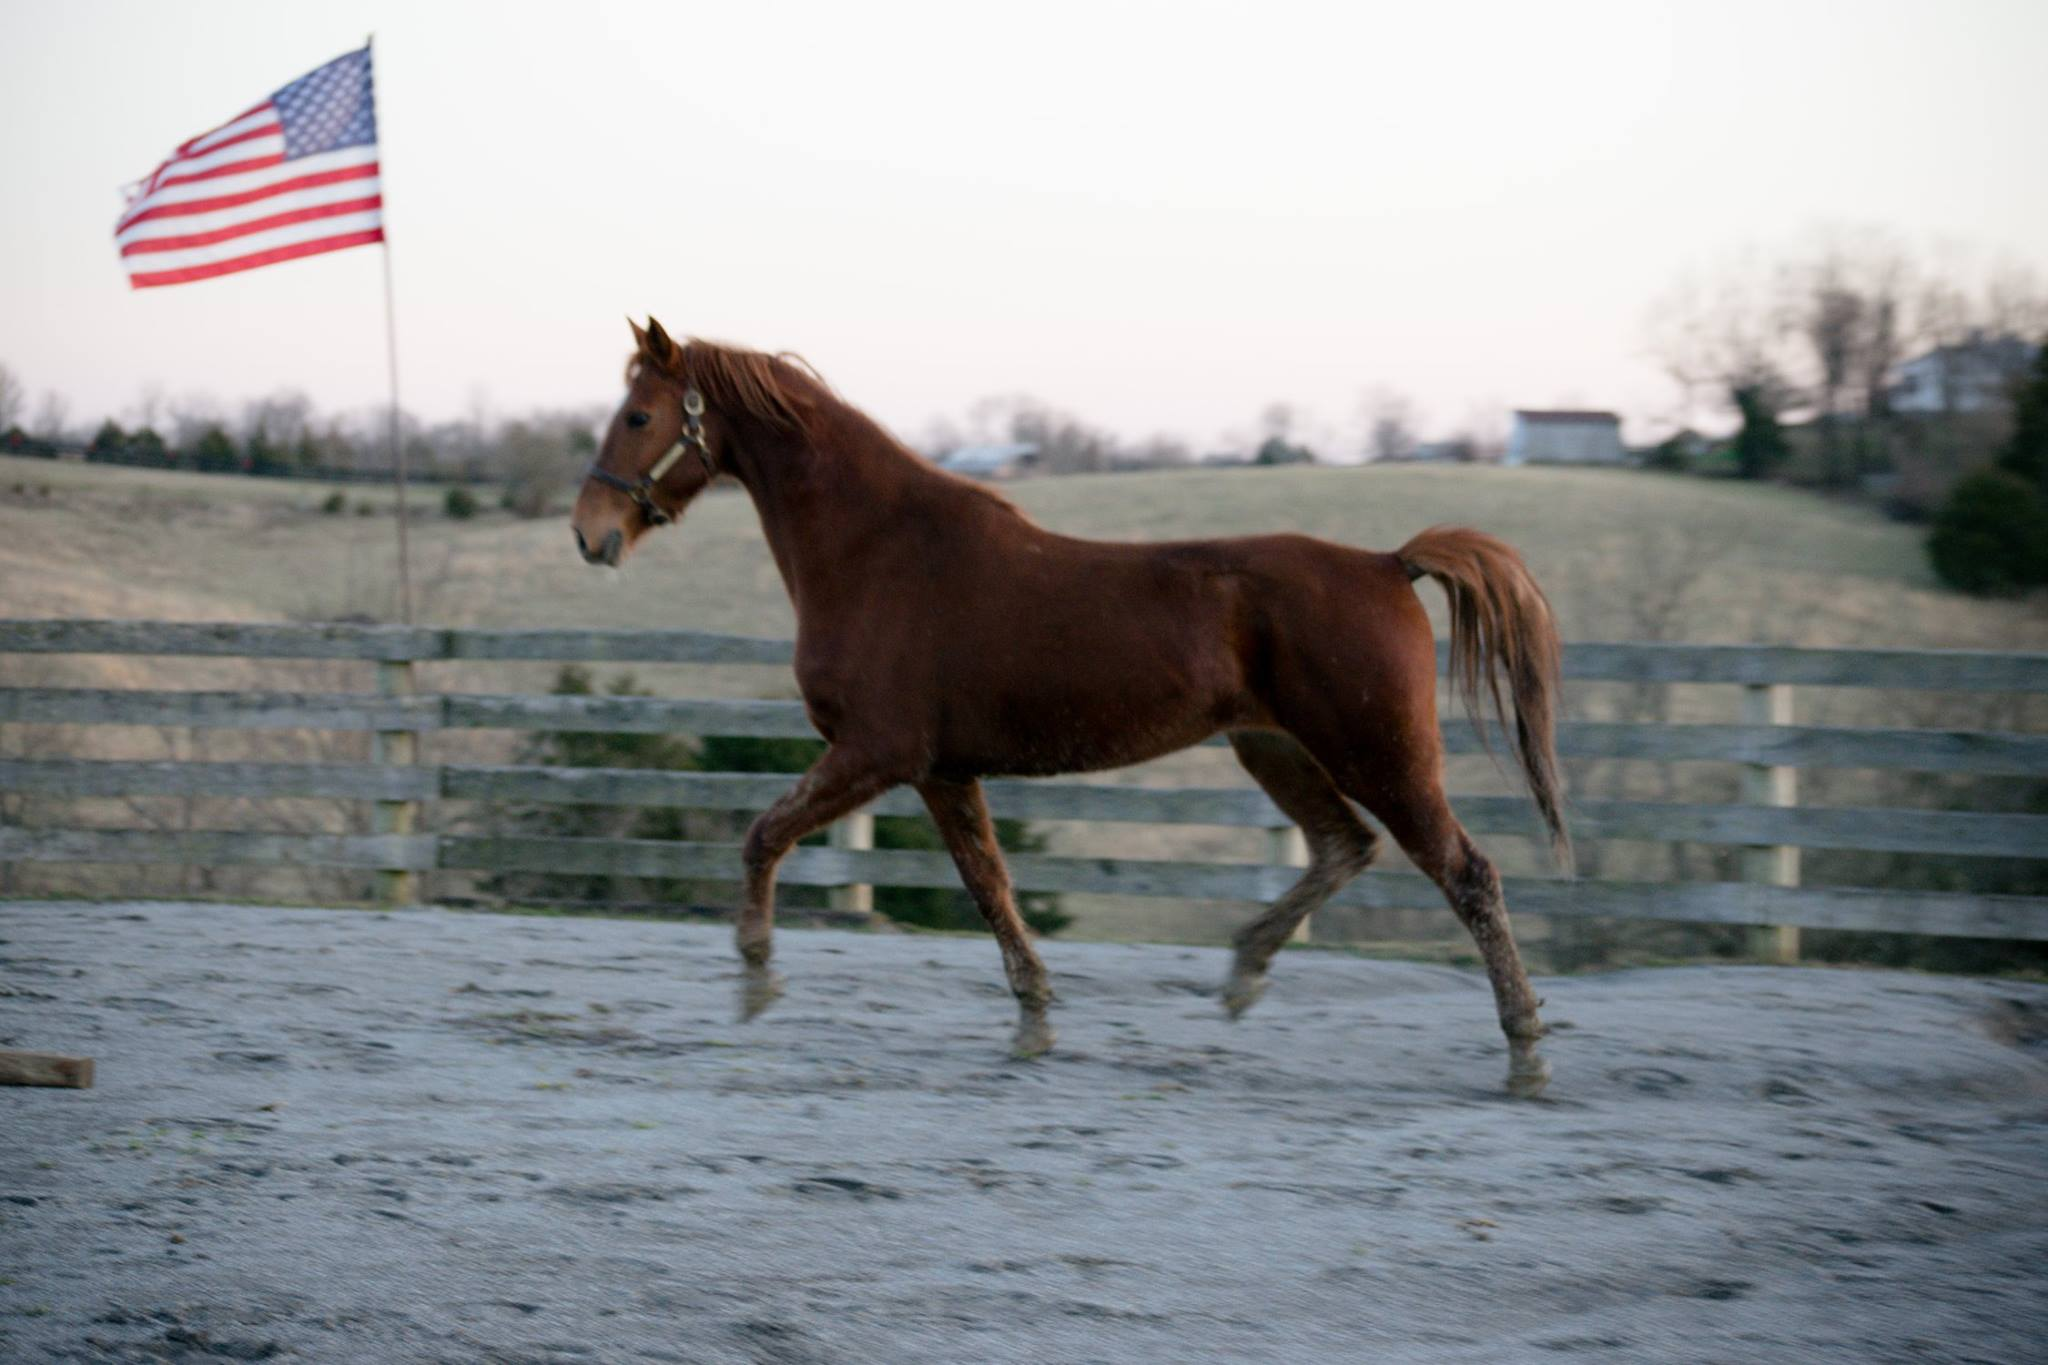 Bebe trotting in a corral